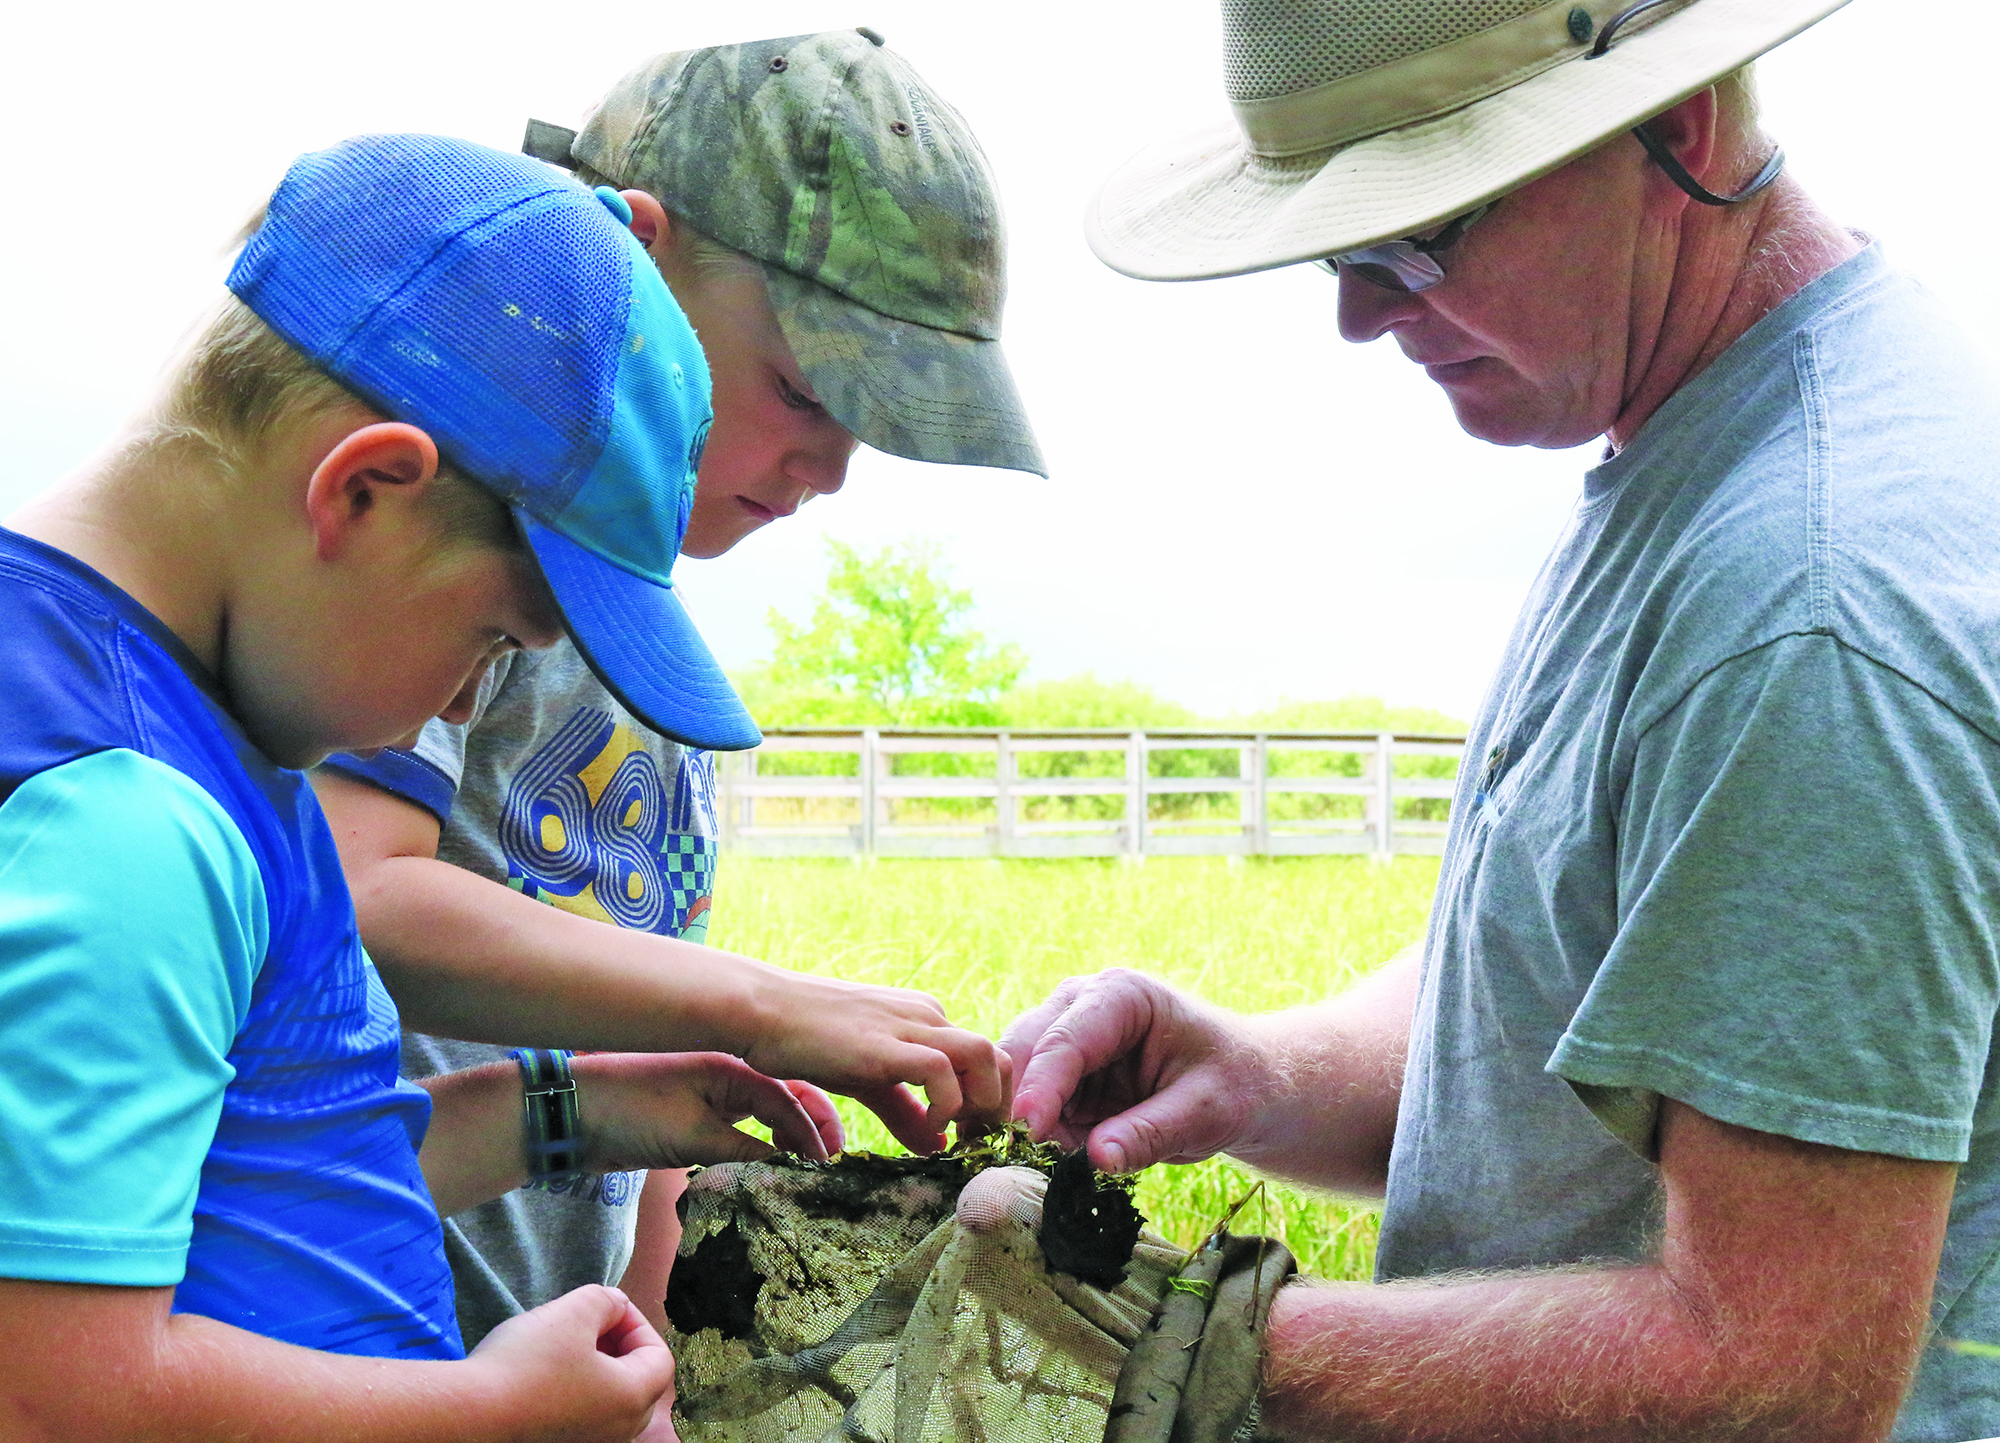 Jeremiah Hodges, left, and Evan Rankin help naturalist Tim Ewing sort through the leaves, mud, eggs, tadpoles and insects scooped from a swamp and pond area at the nature center.Carol Ryczek   NEW Media